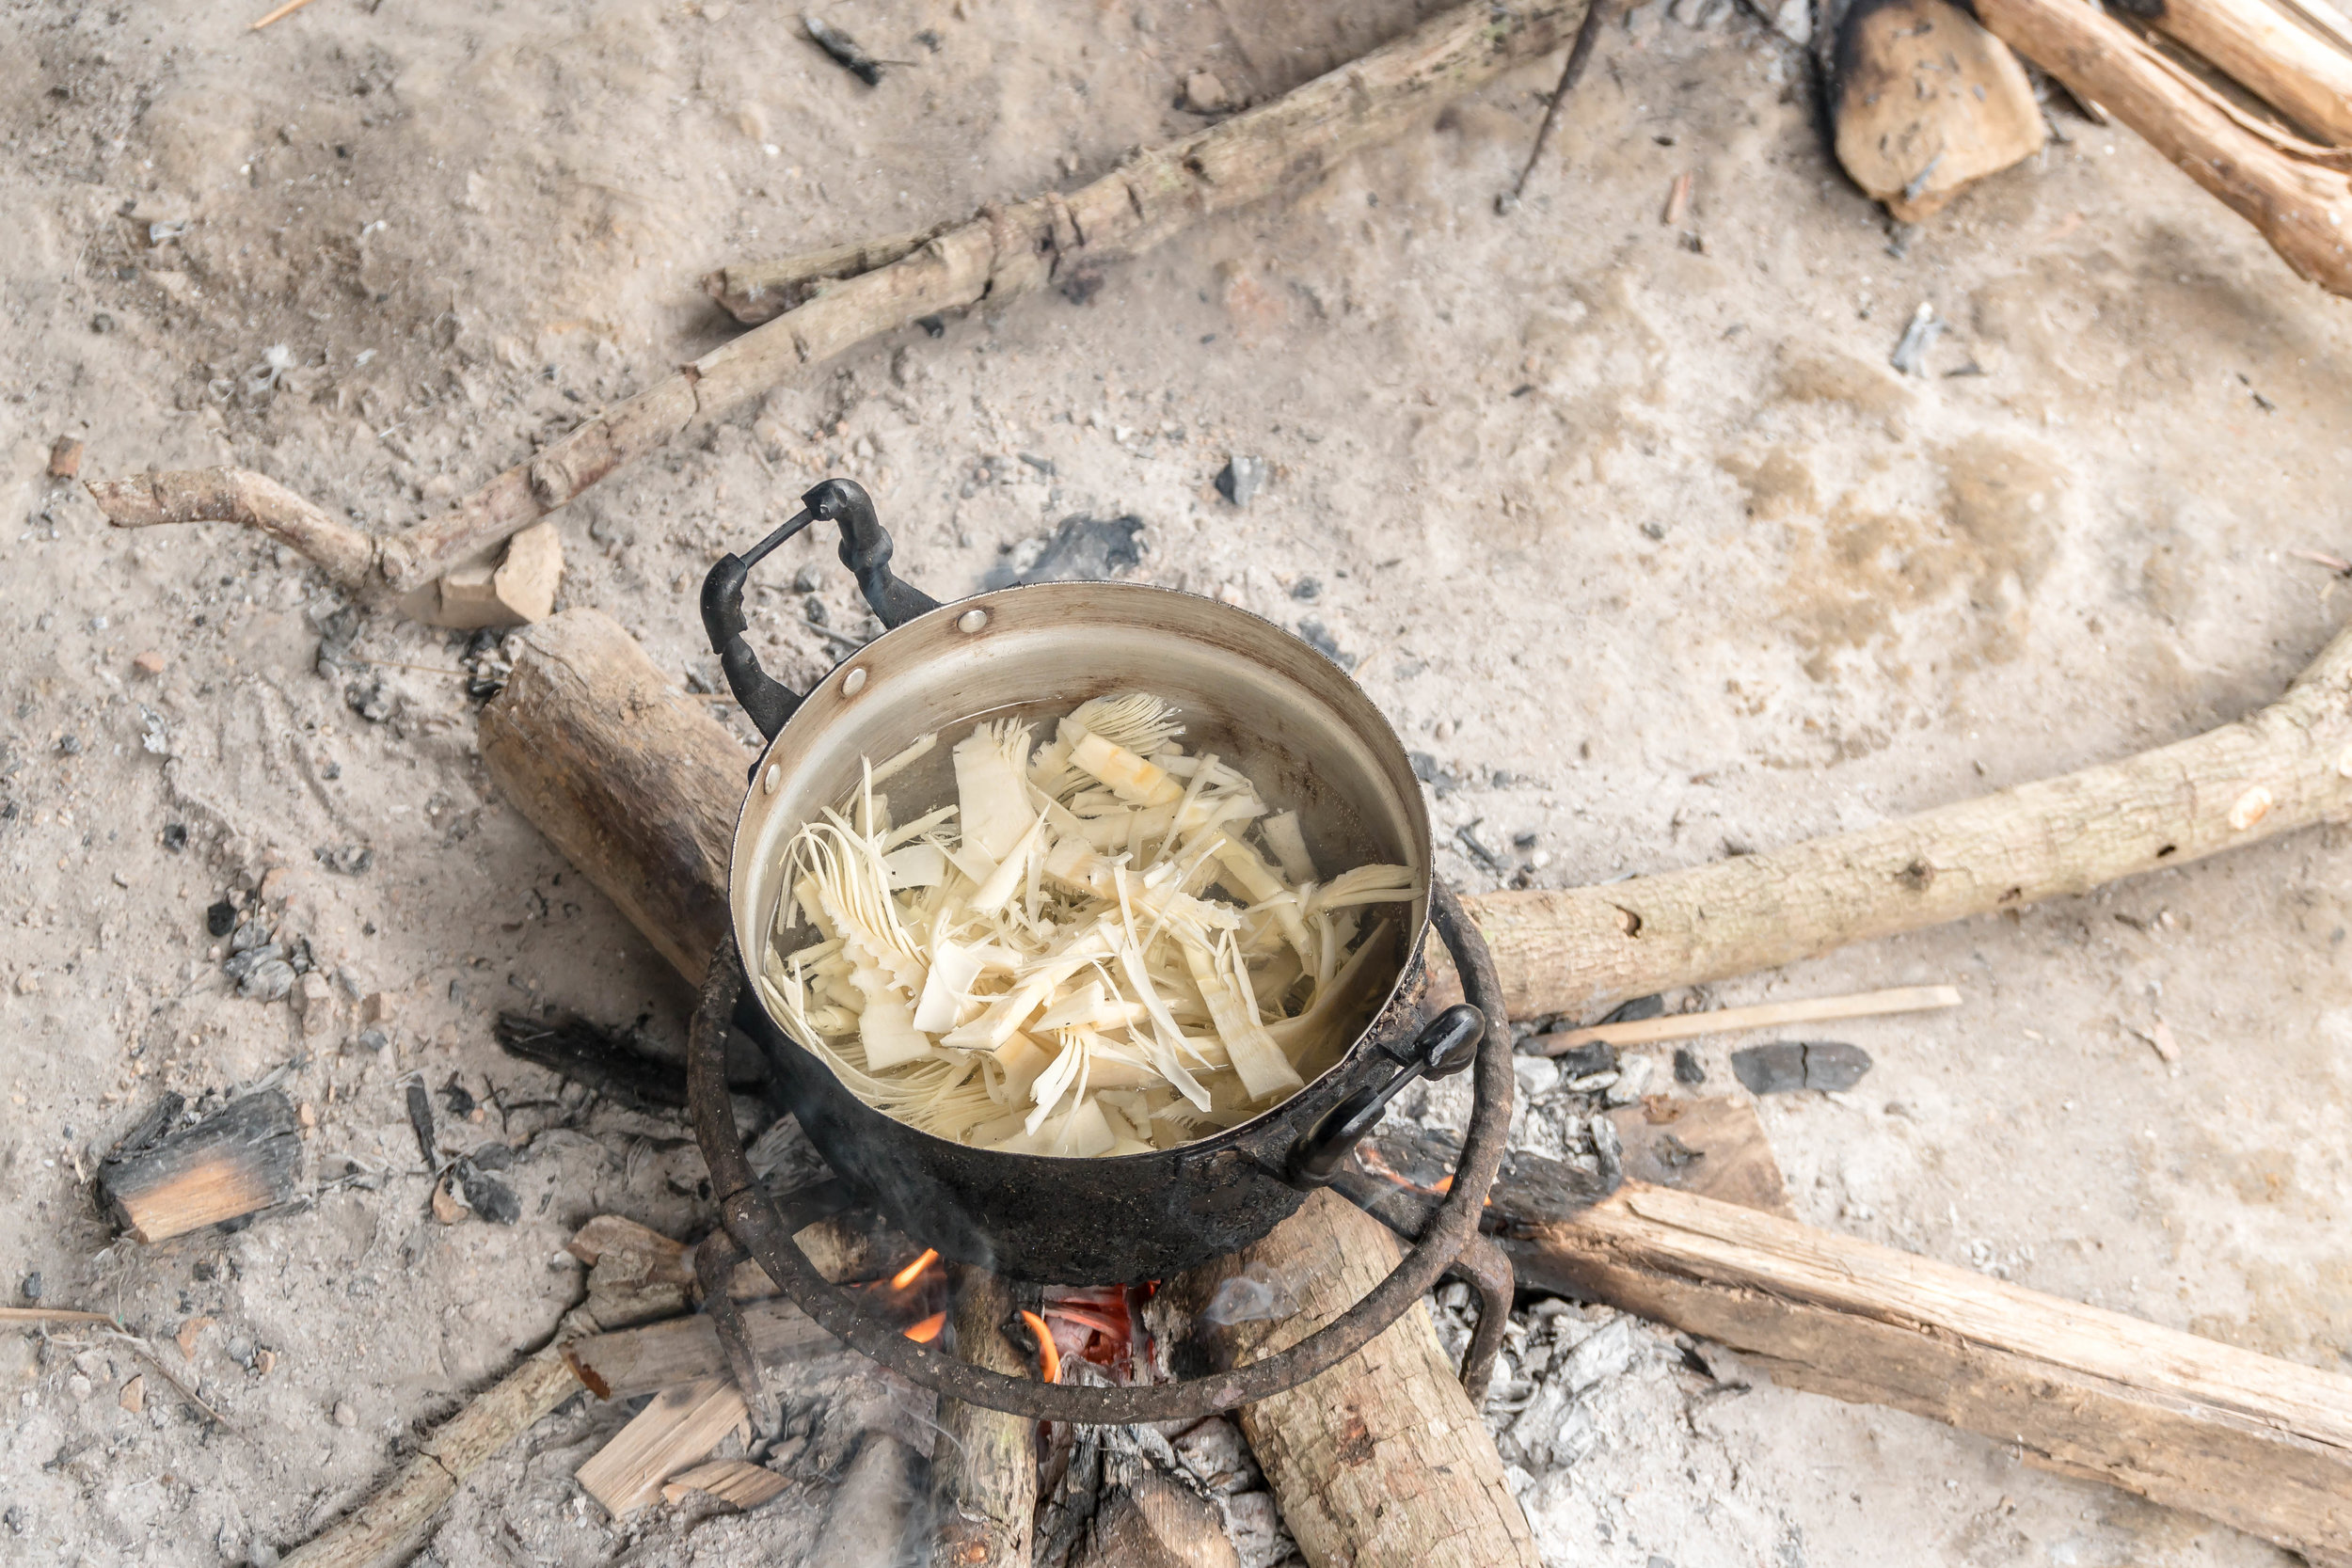 bamboo shoots boil over the fire